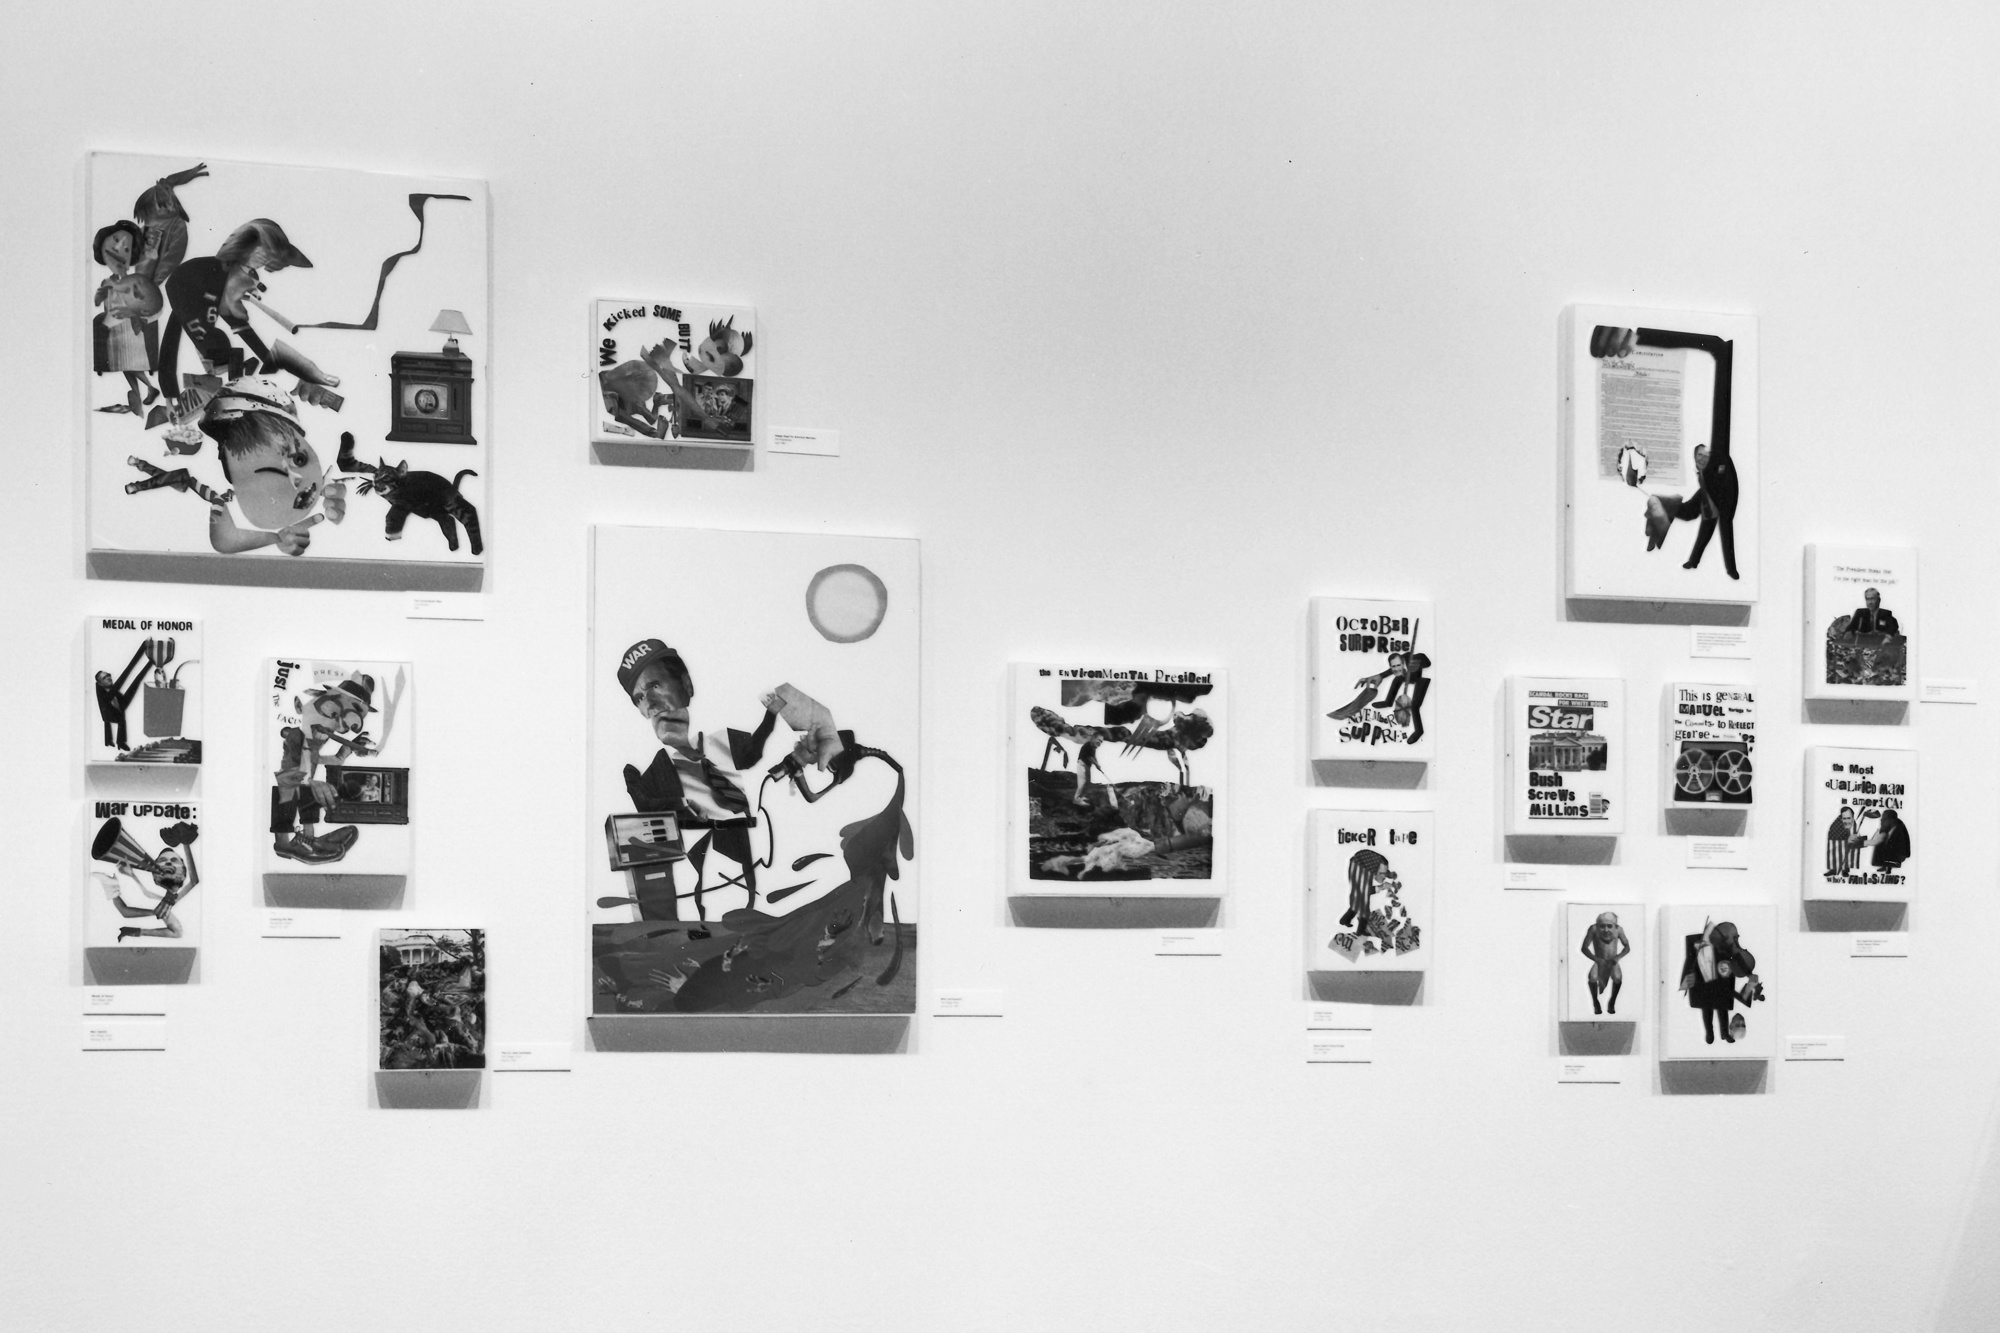 Installation view of Projects 35: Stephen Kroninger at The Museum of Modern Art, New York. Photo: Mali Olatunji